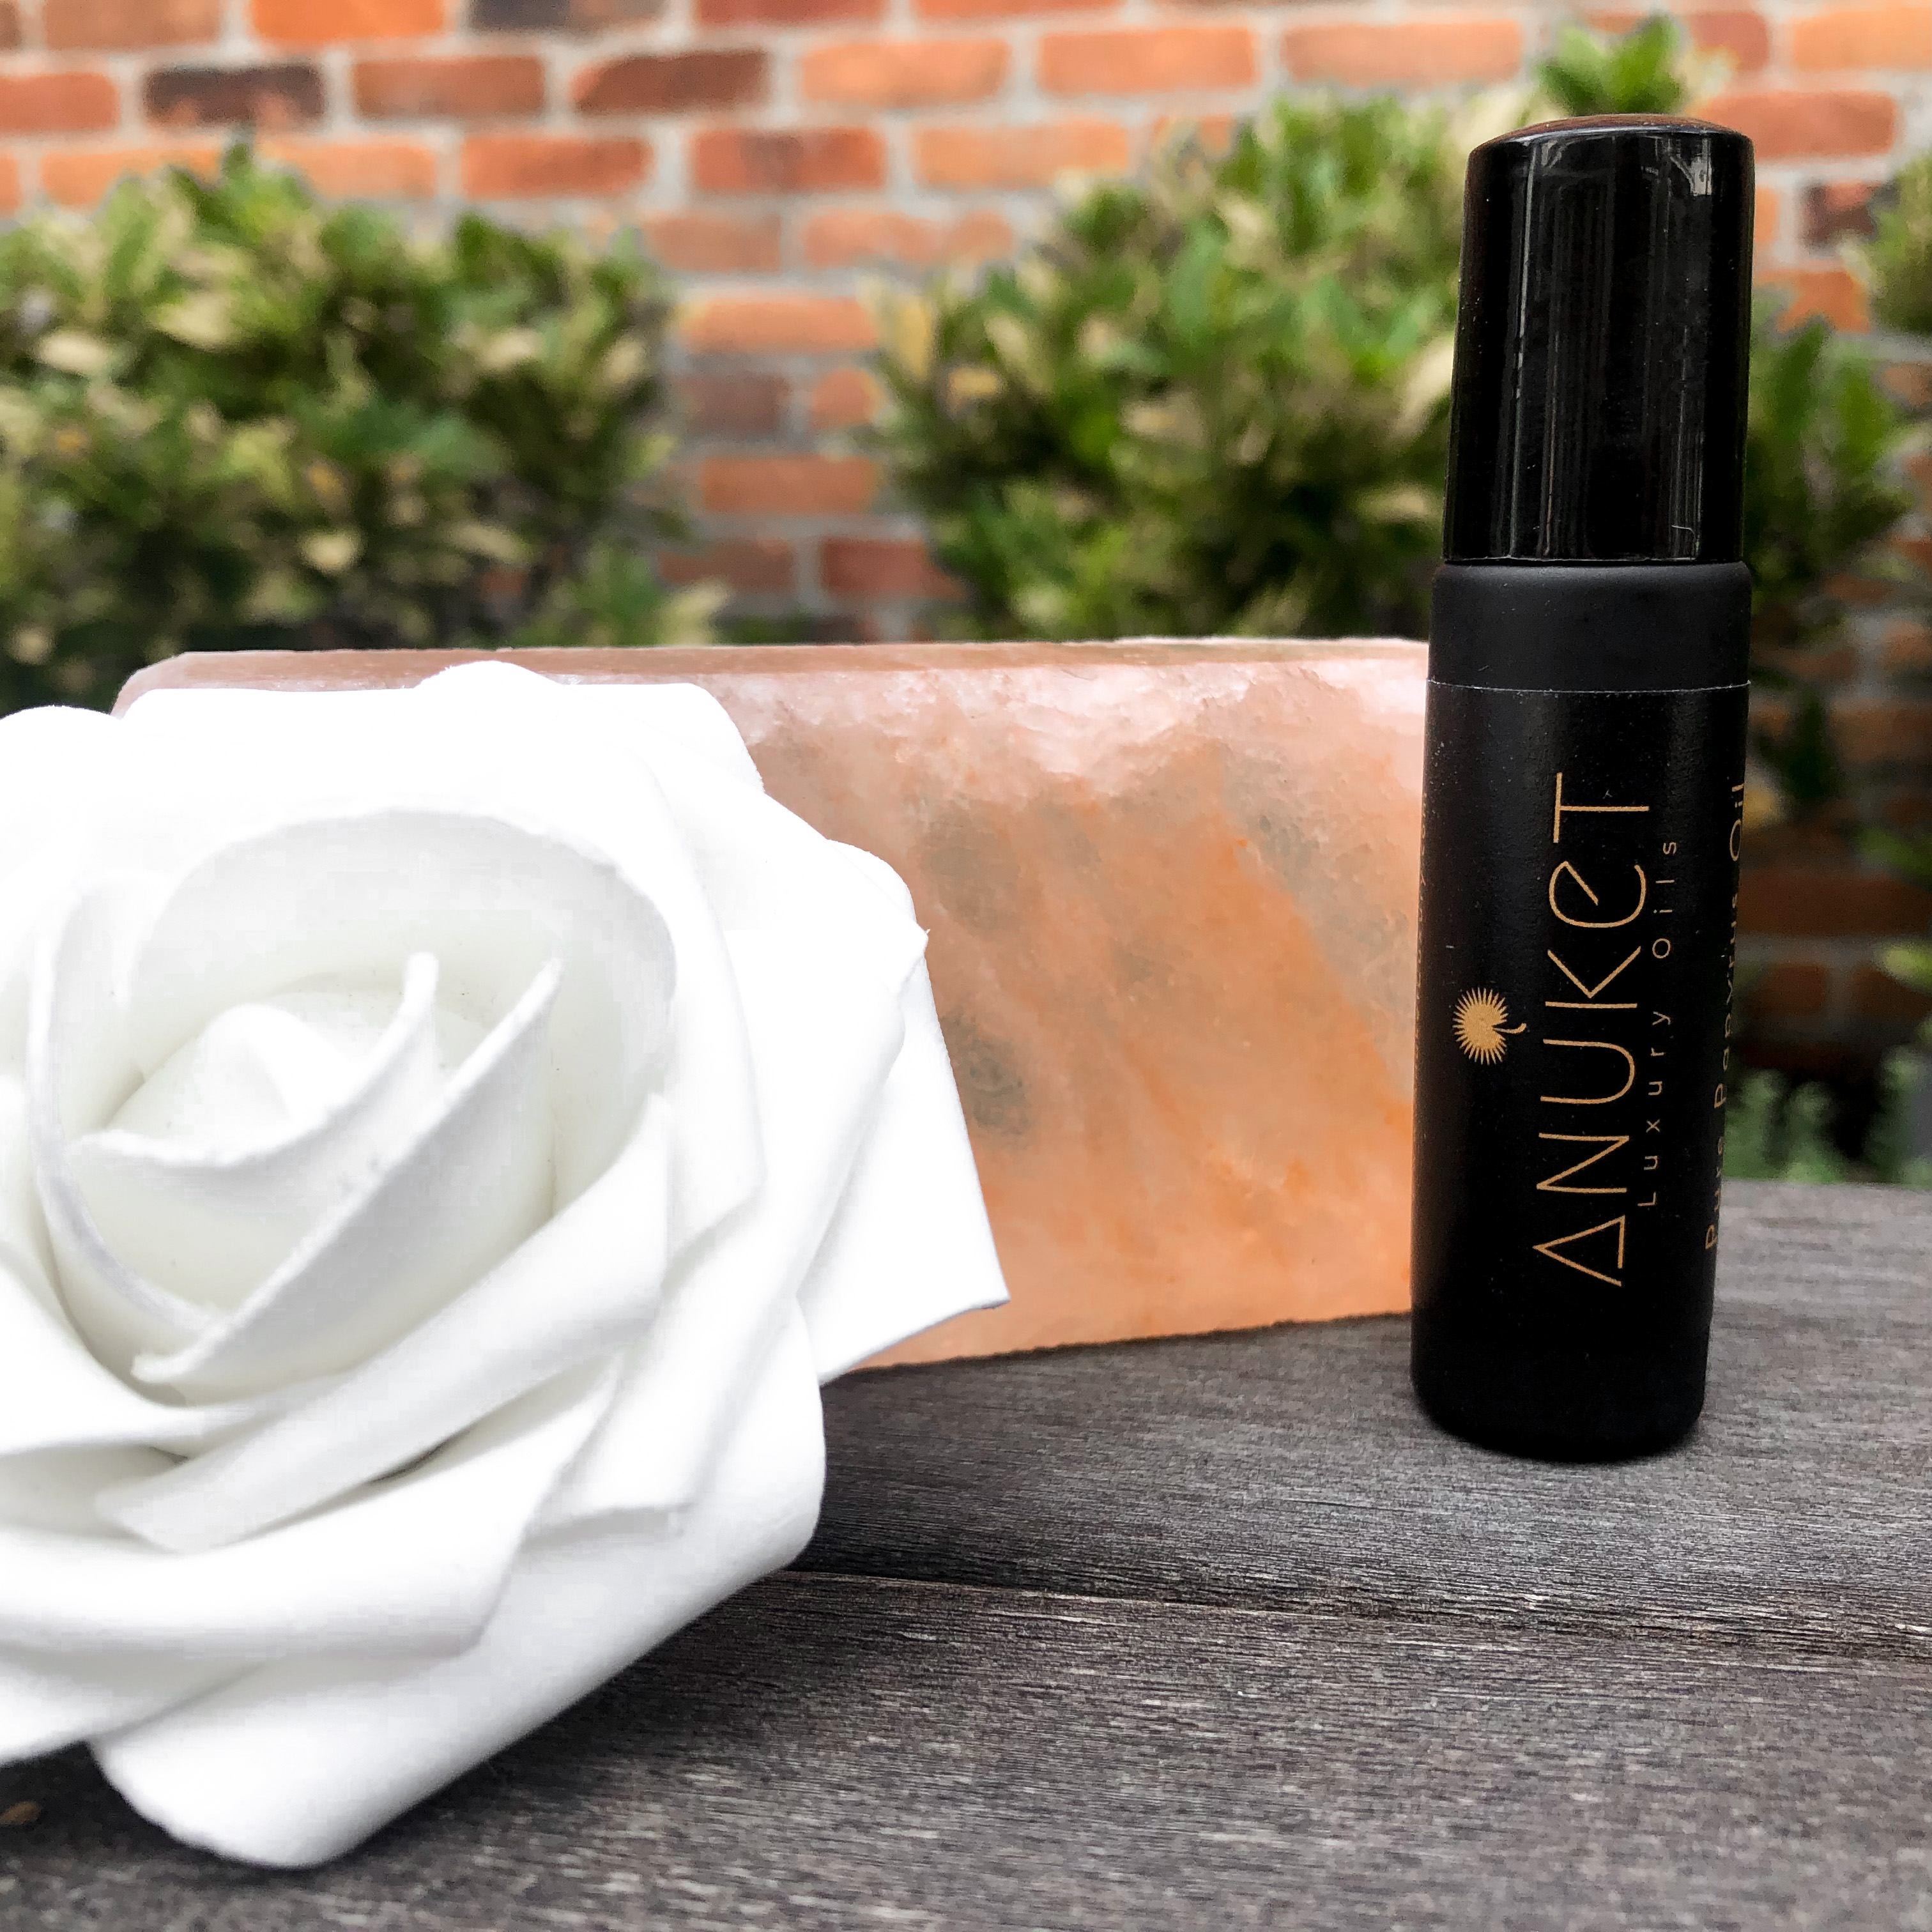 Pure Egyptian Rose Oil, in a black roll on dispenser, on a concrete base with a white rose